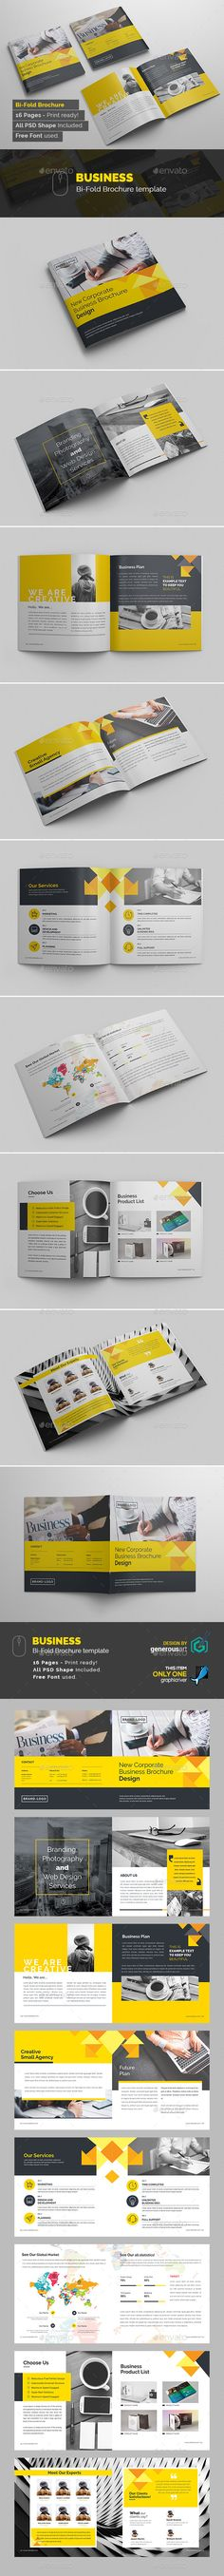 BiFold Brochure — Photoshop PSD #blue #8x8 • Download ➝ https://graphicriver.net/item/bifold-brochure/19118151?ref=pxcr